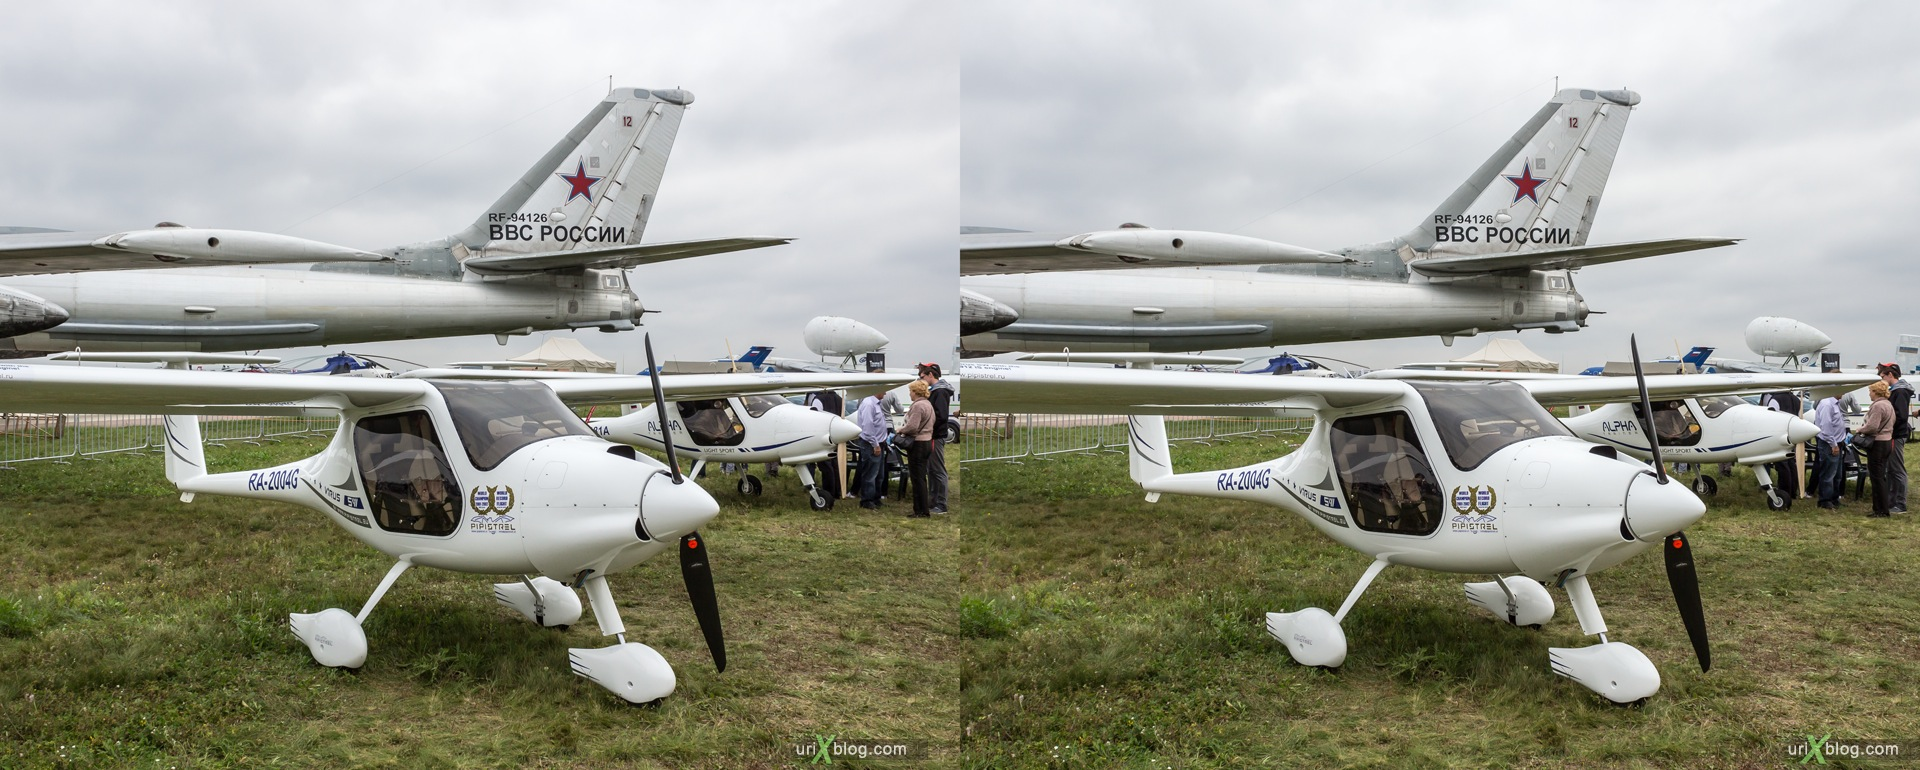 2013, Pipistrel Virus SW, MAKS, International Aviation and Space Salon, Russia, Ramenskoye airfield, airplane, 3D, stereo pair, cross-eyed, crossview, cross view stereo pair, stereoscopic